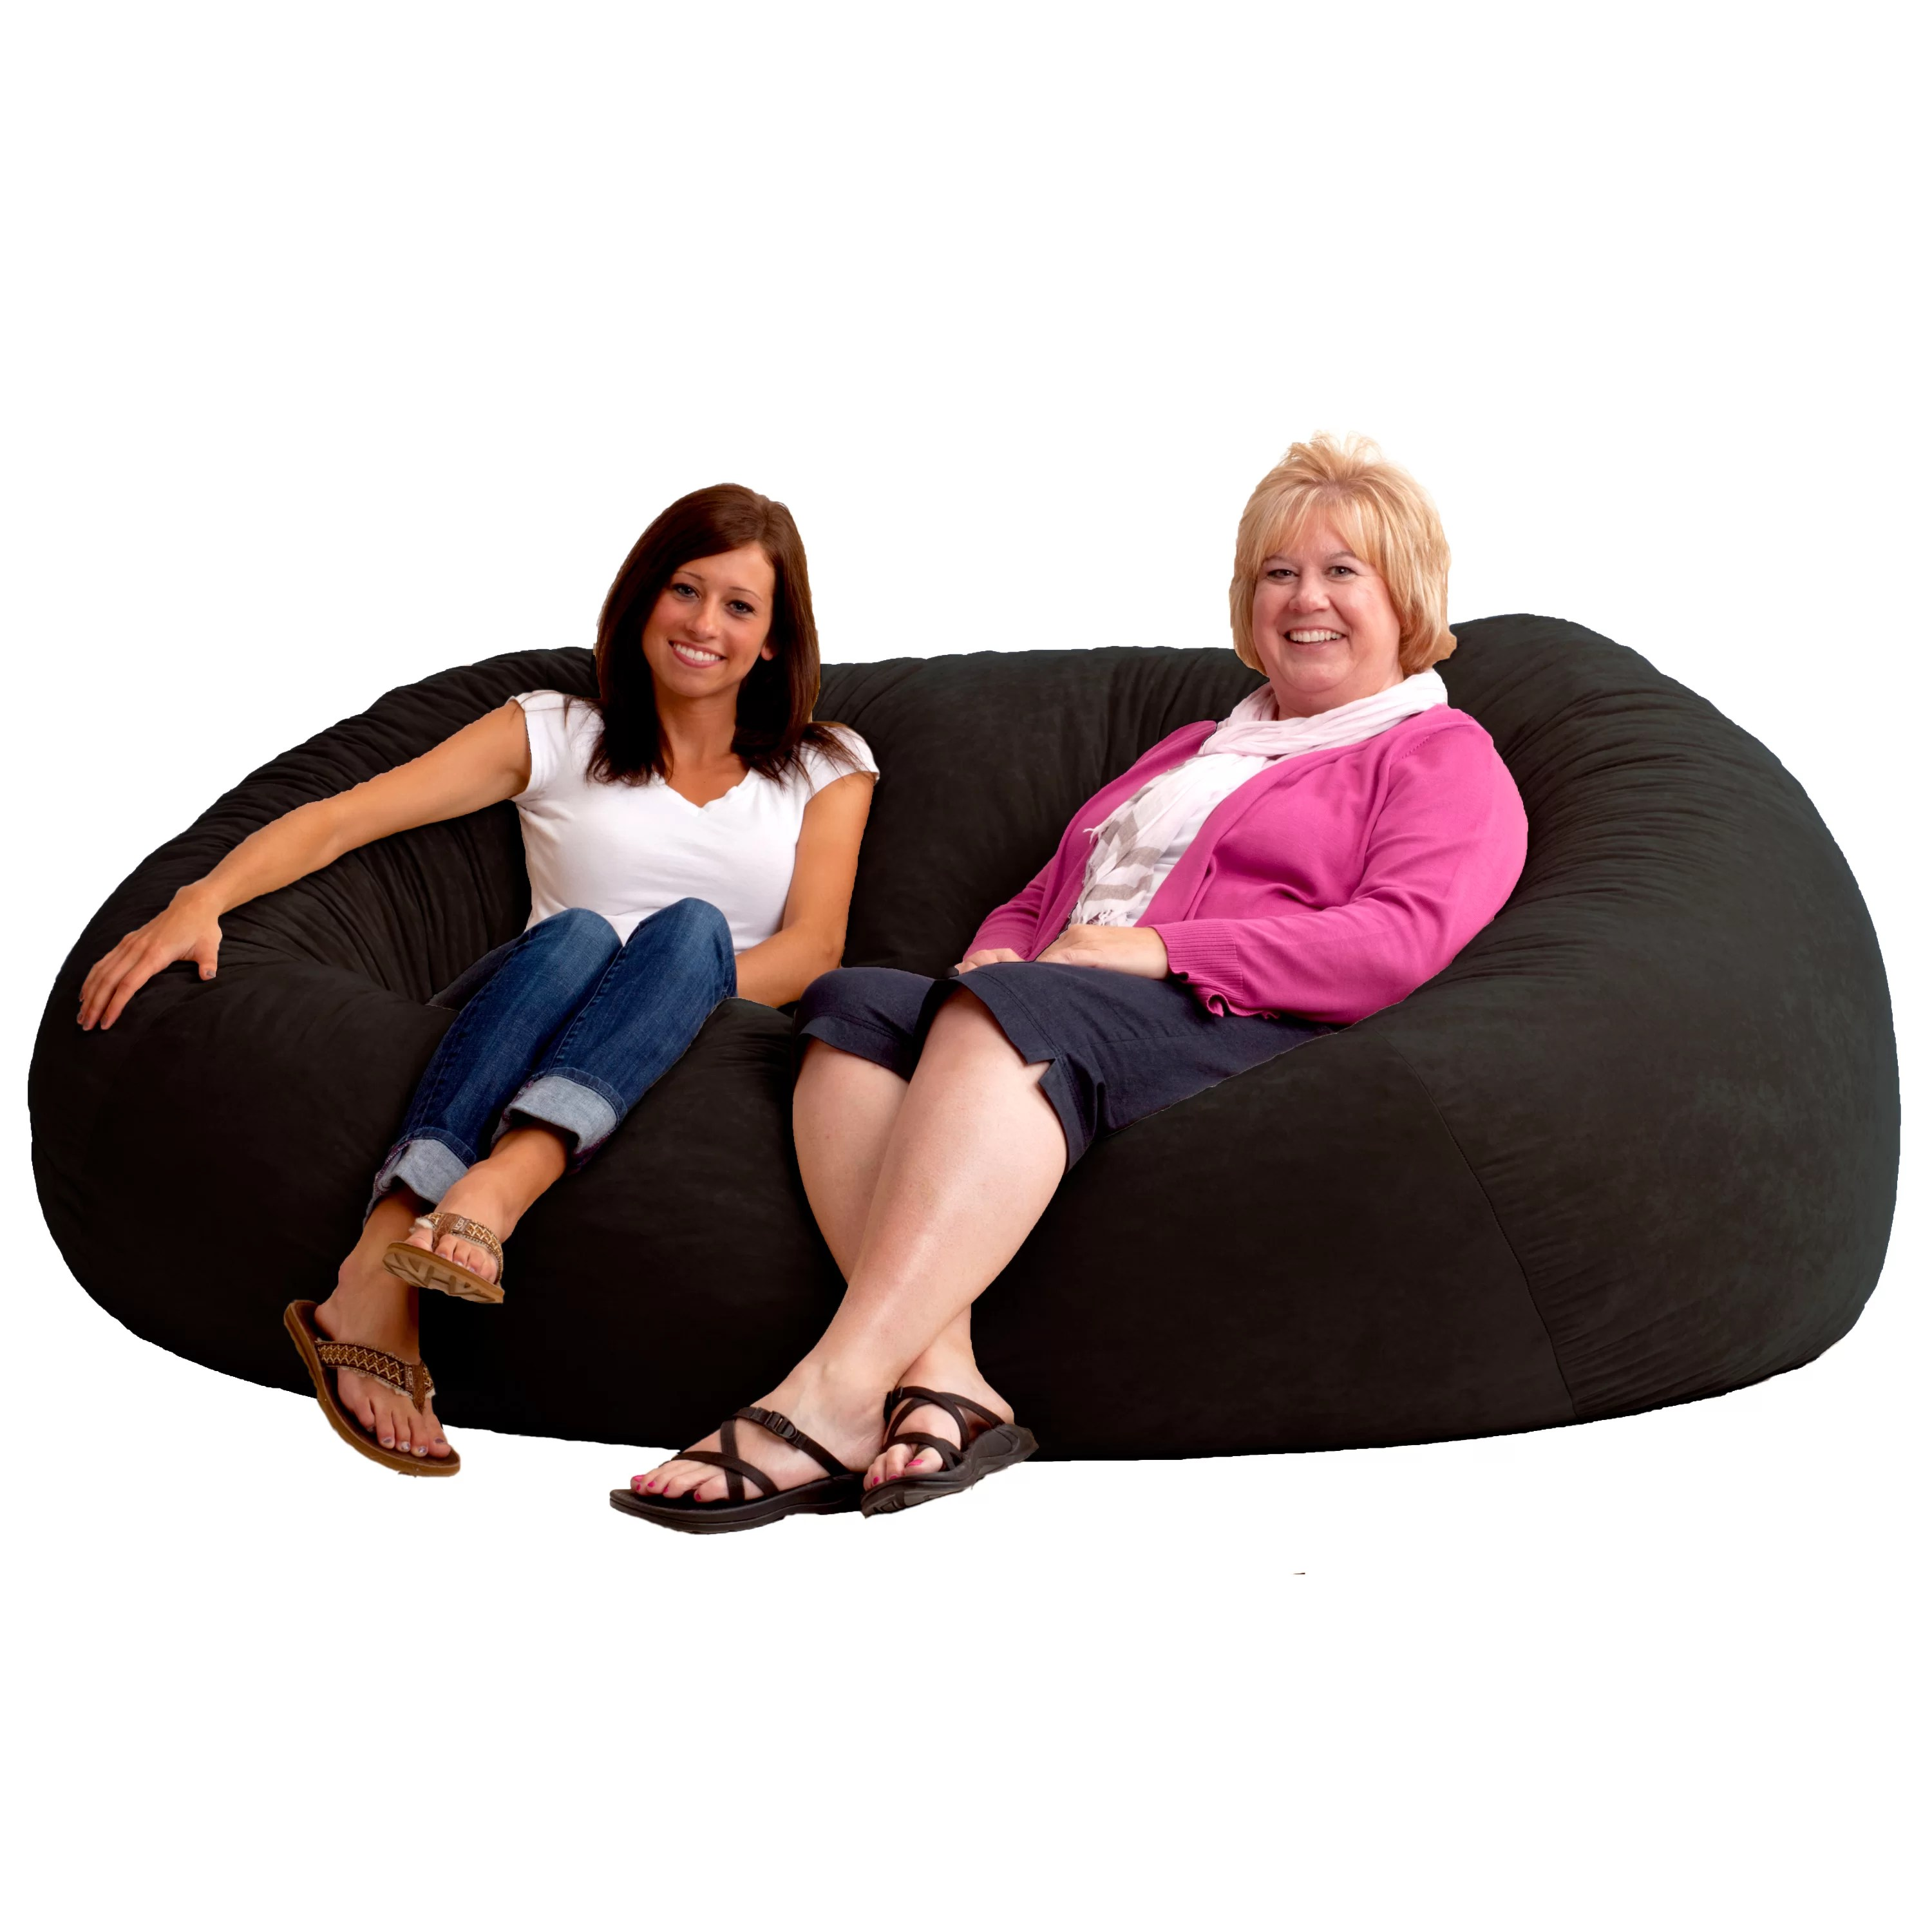 two person bean bag chair small bedroom nursing comfort research fuf sofa and reviews wayfair